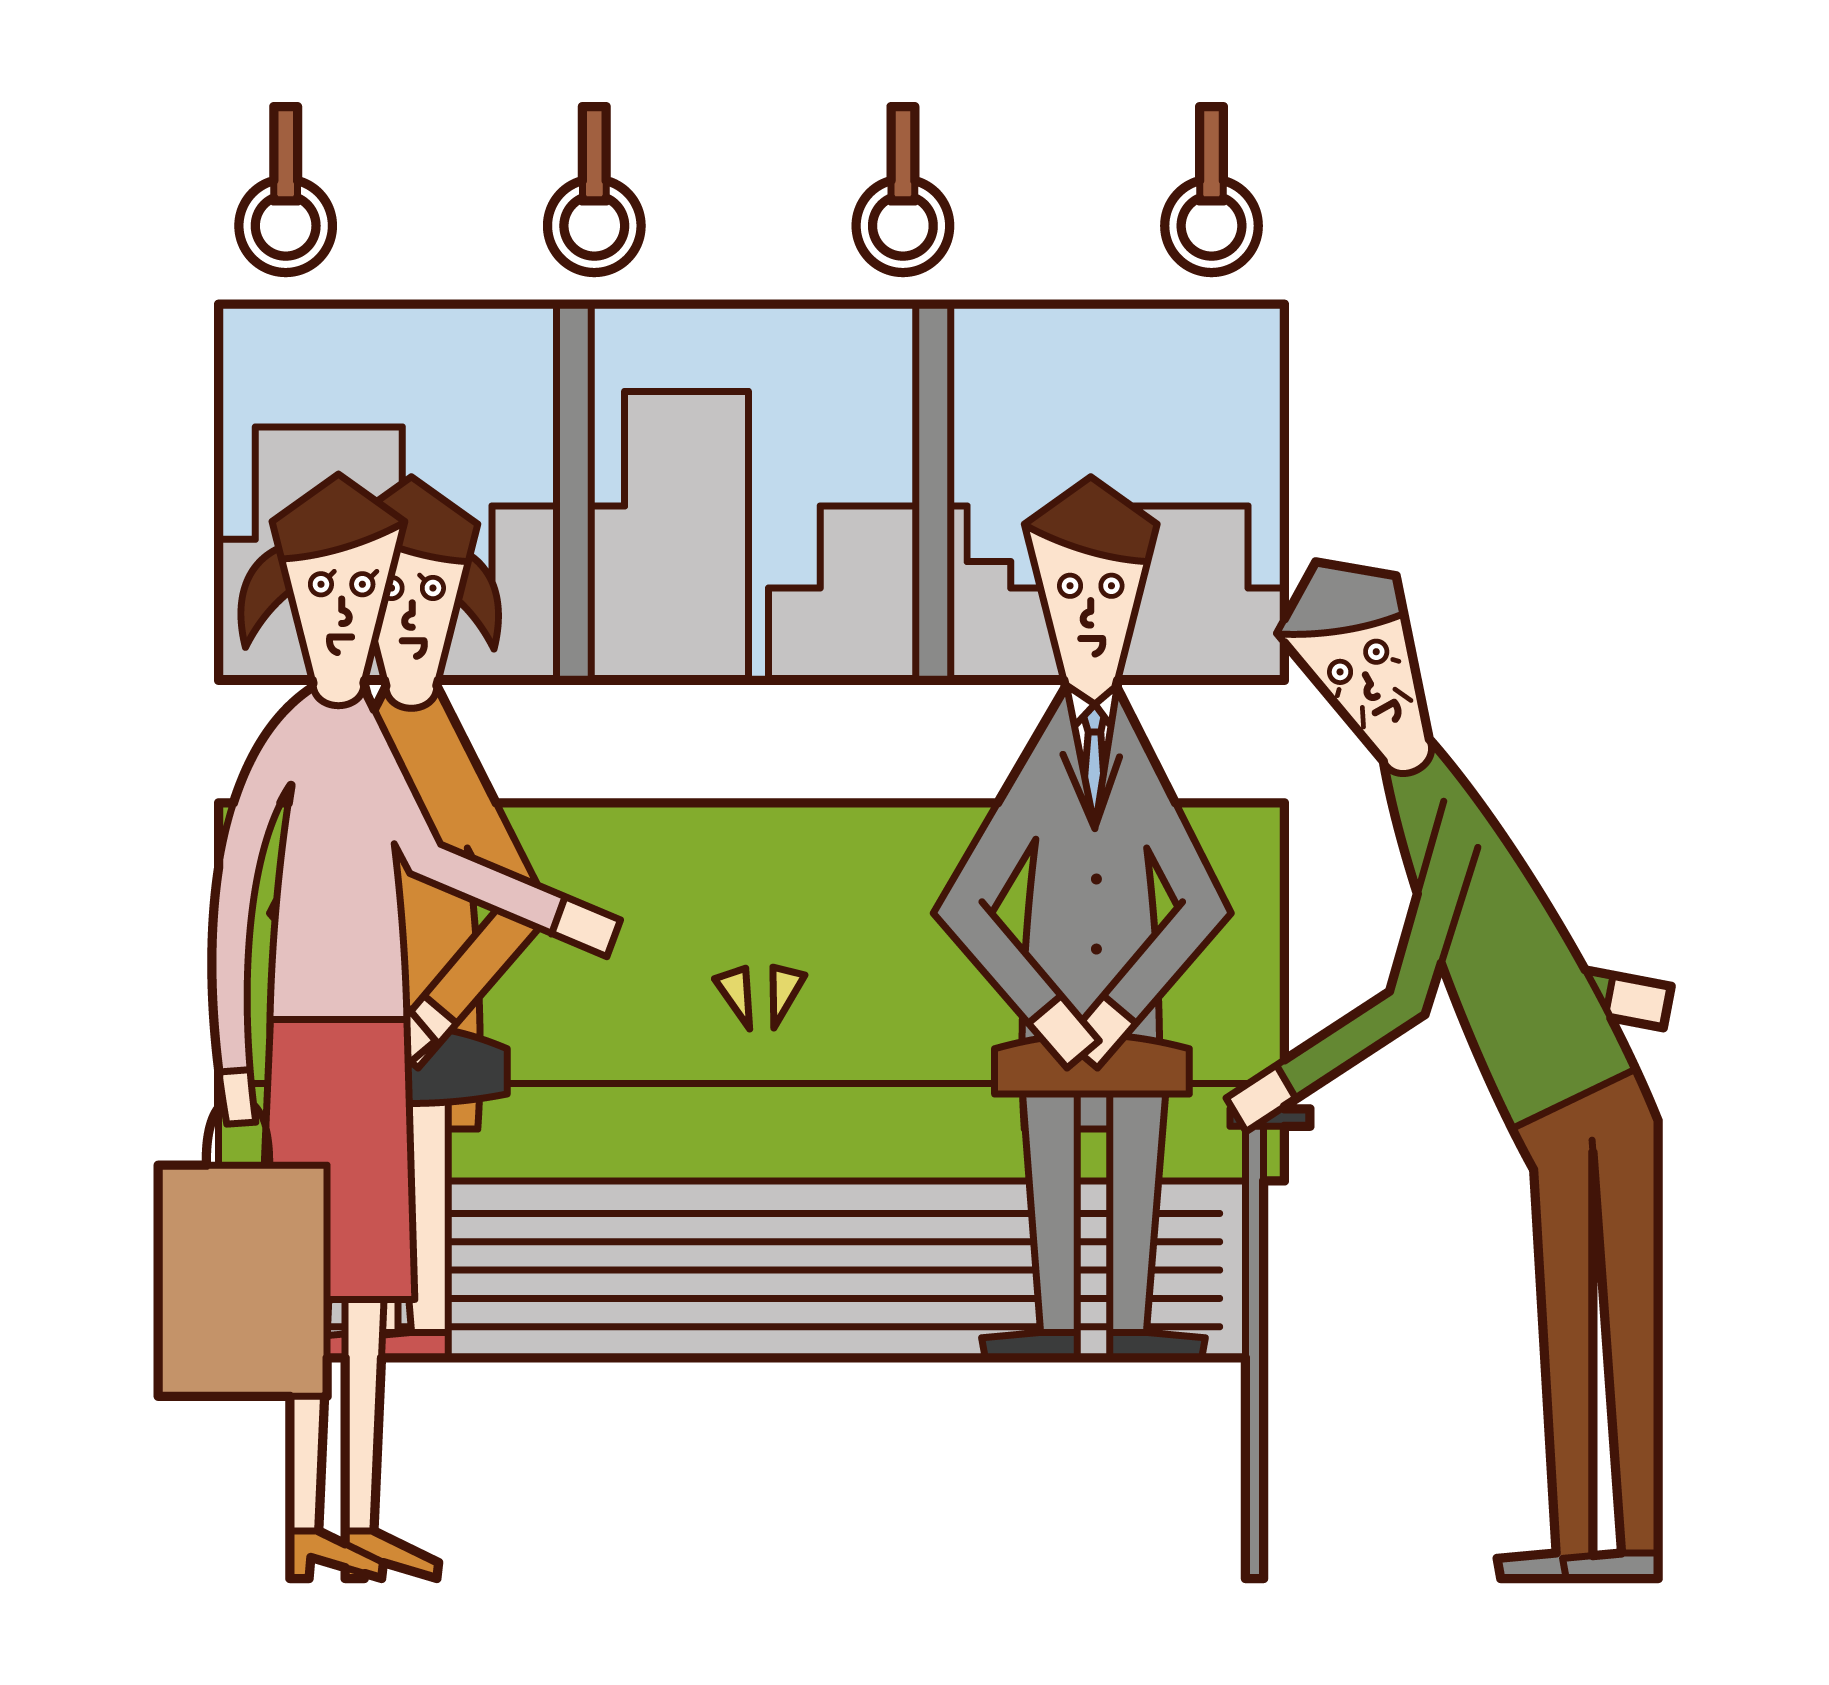 Illustration of a woman giving up her seat to an old man on a train